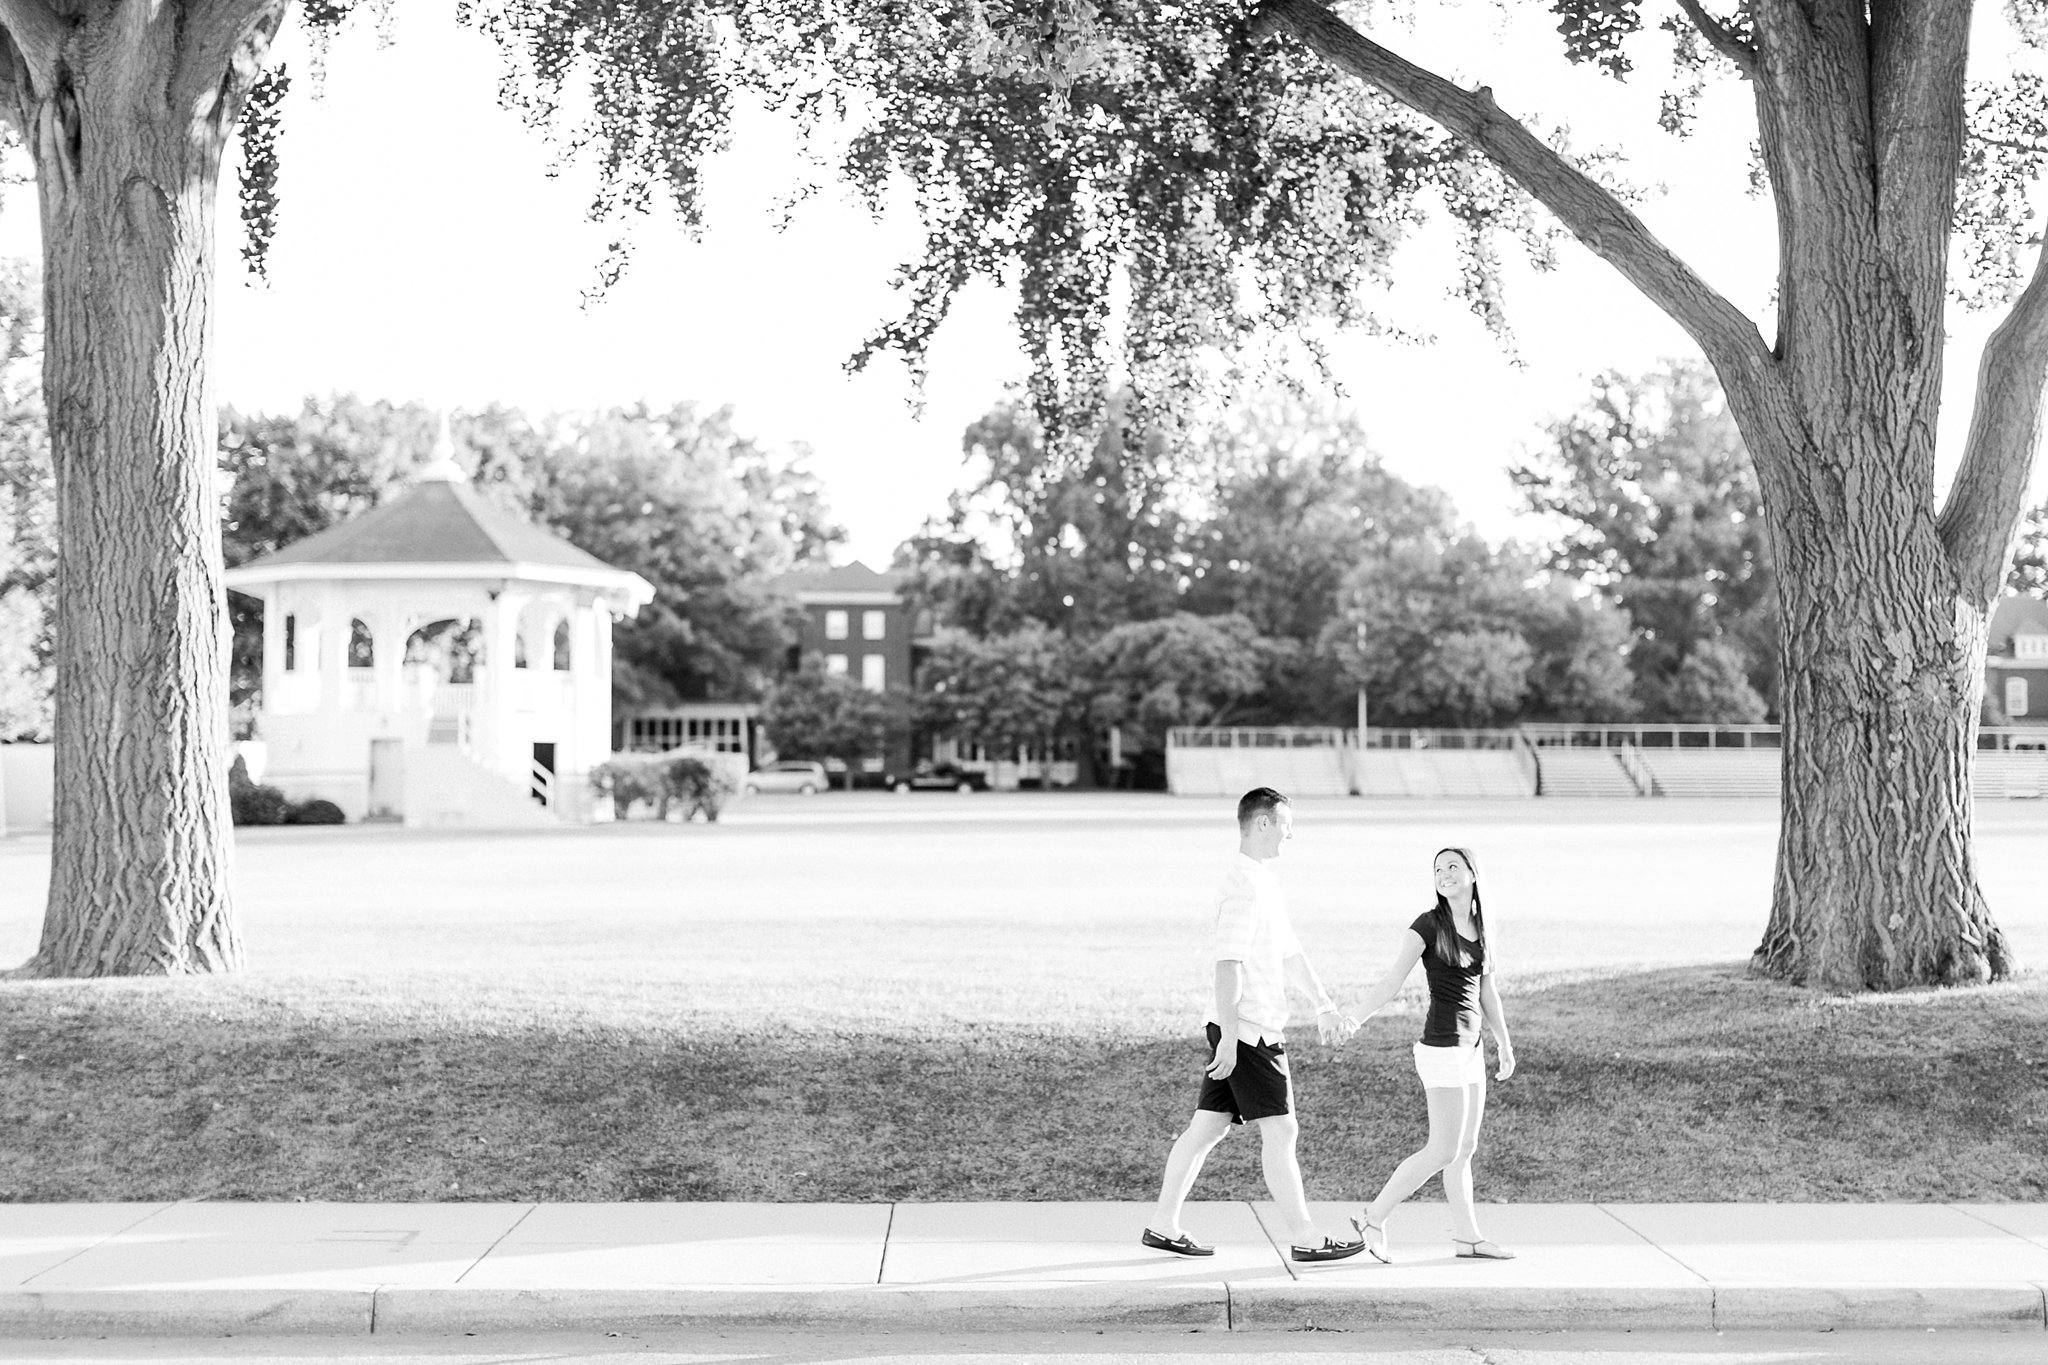 Naval Academy Engagement Photos Annapolis Wedding Photographer Megan Kelsey Photography Megan & Travis-129.jpg